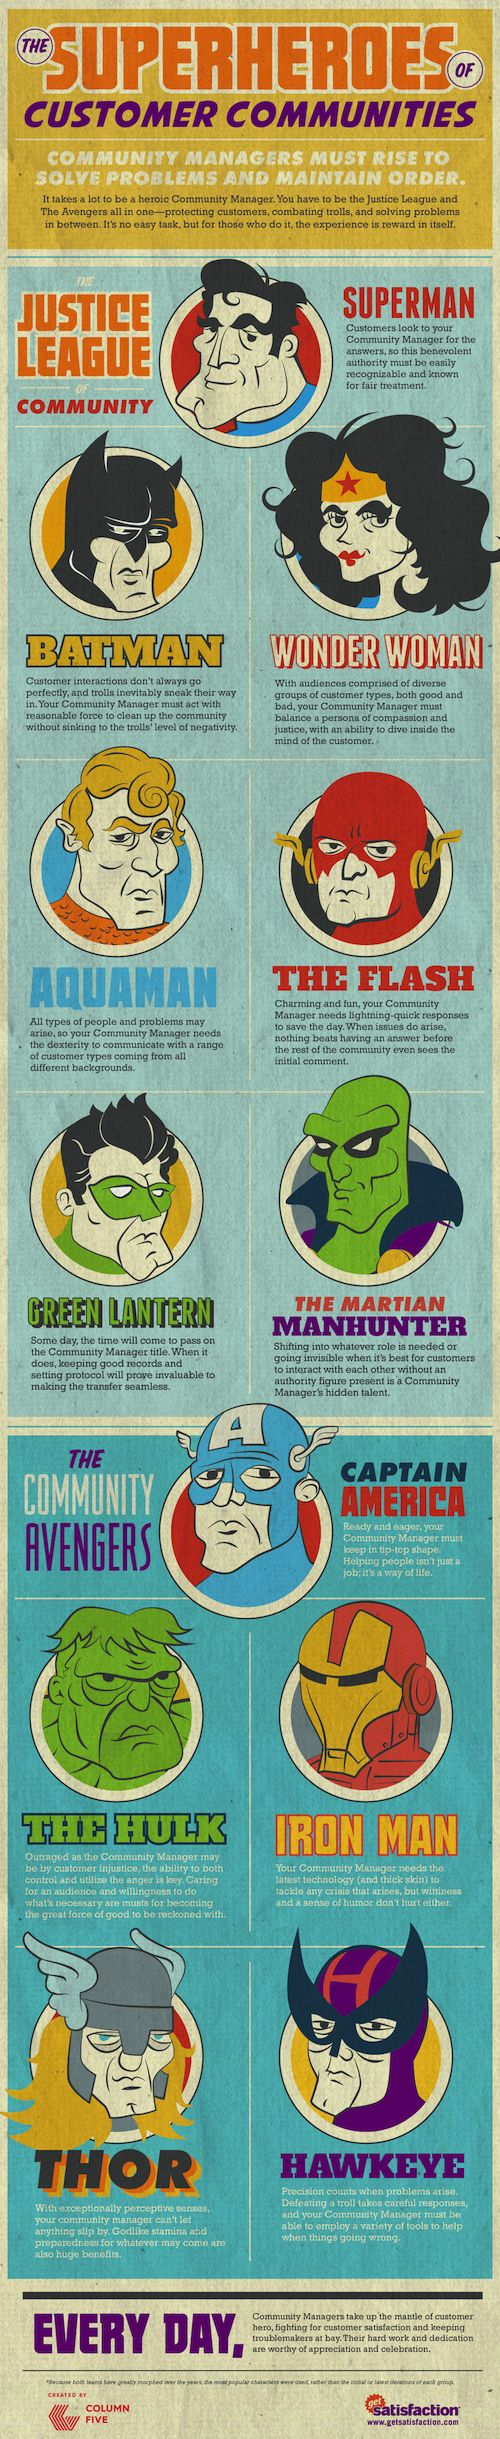 Community Managers are the superheroes of today's online world.